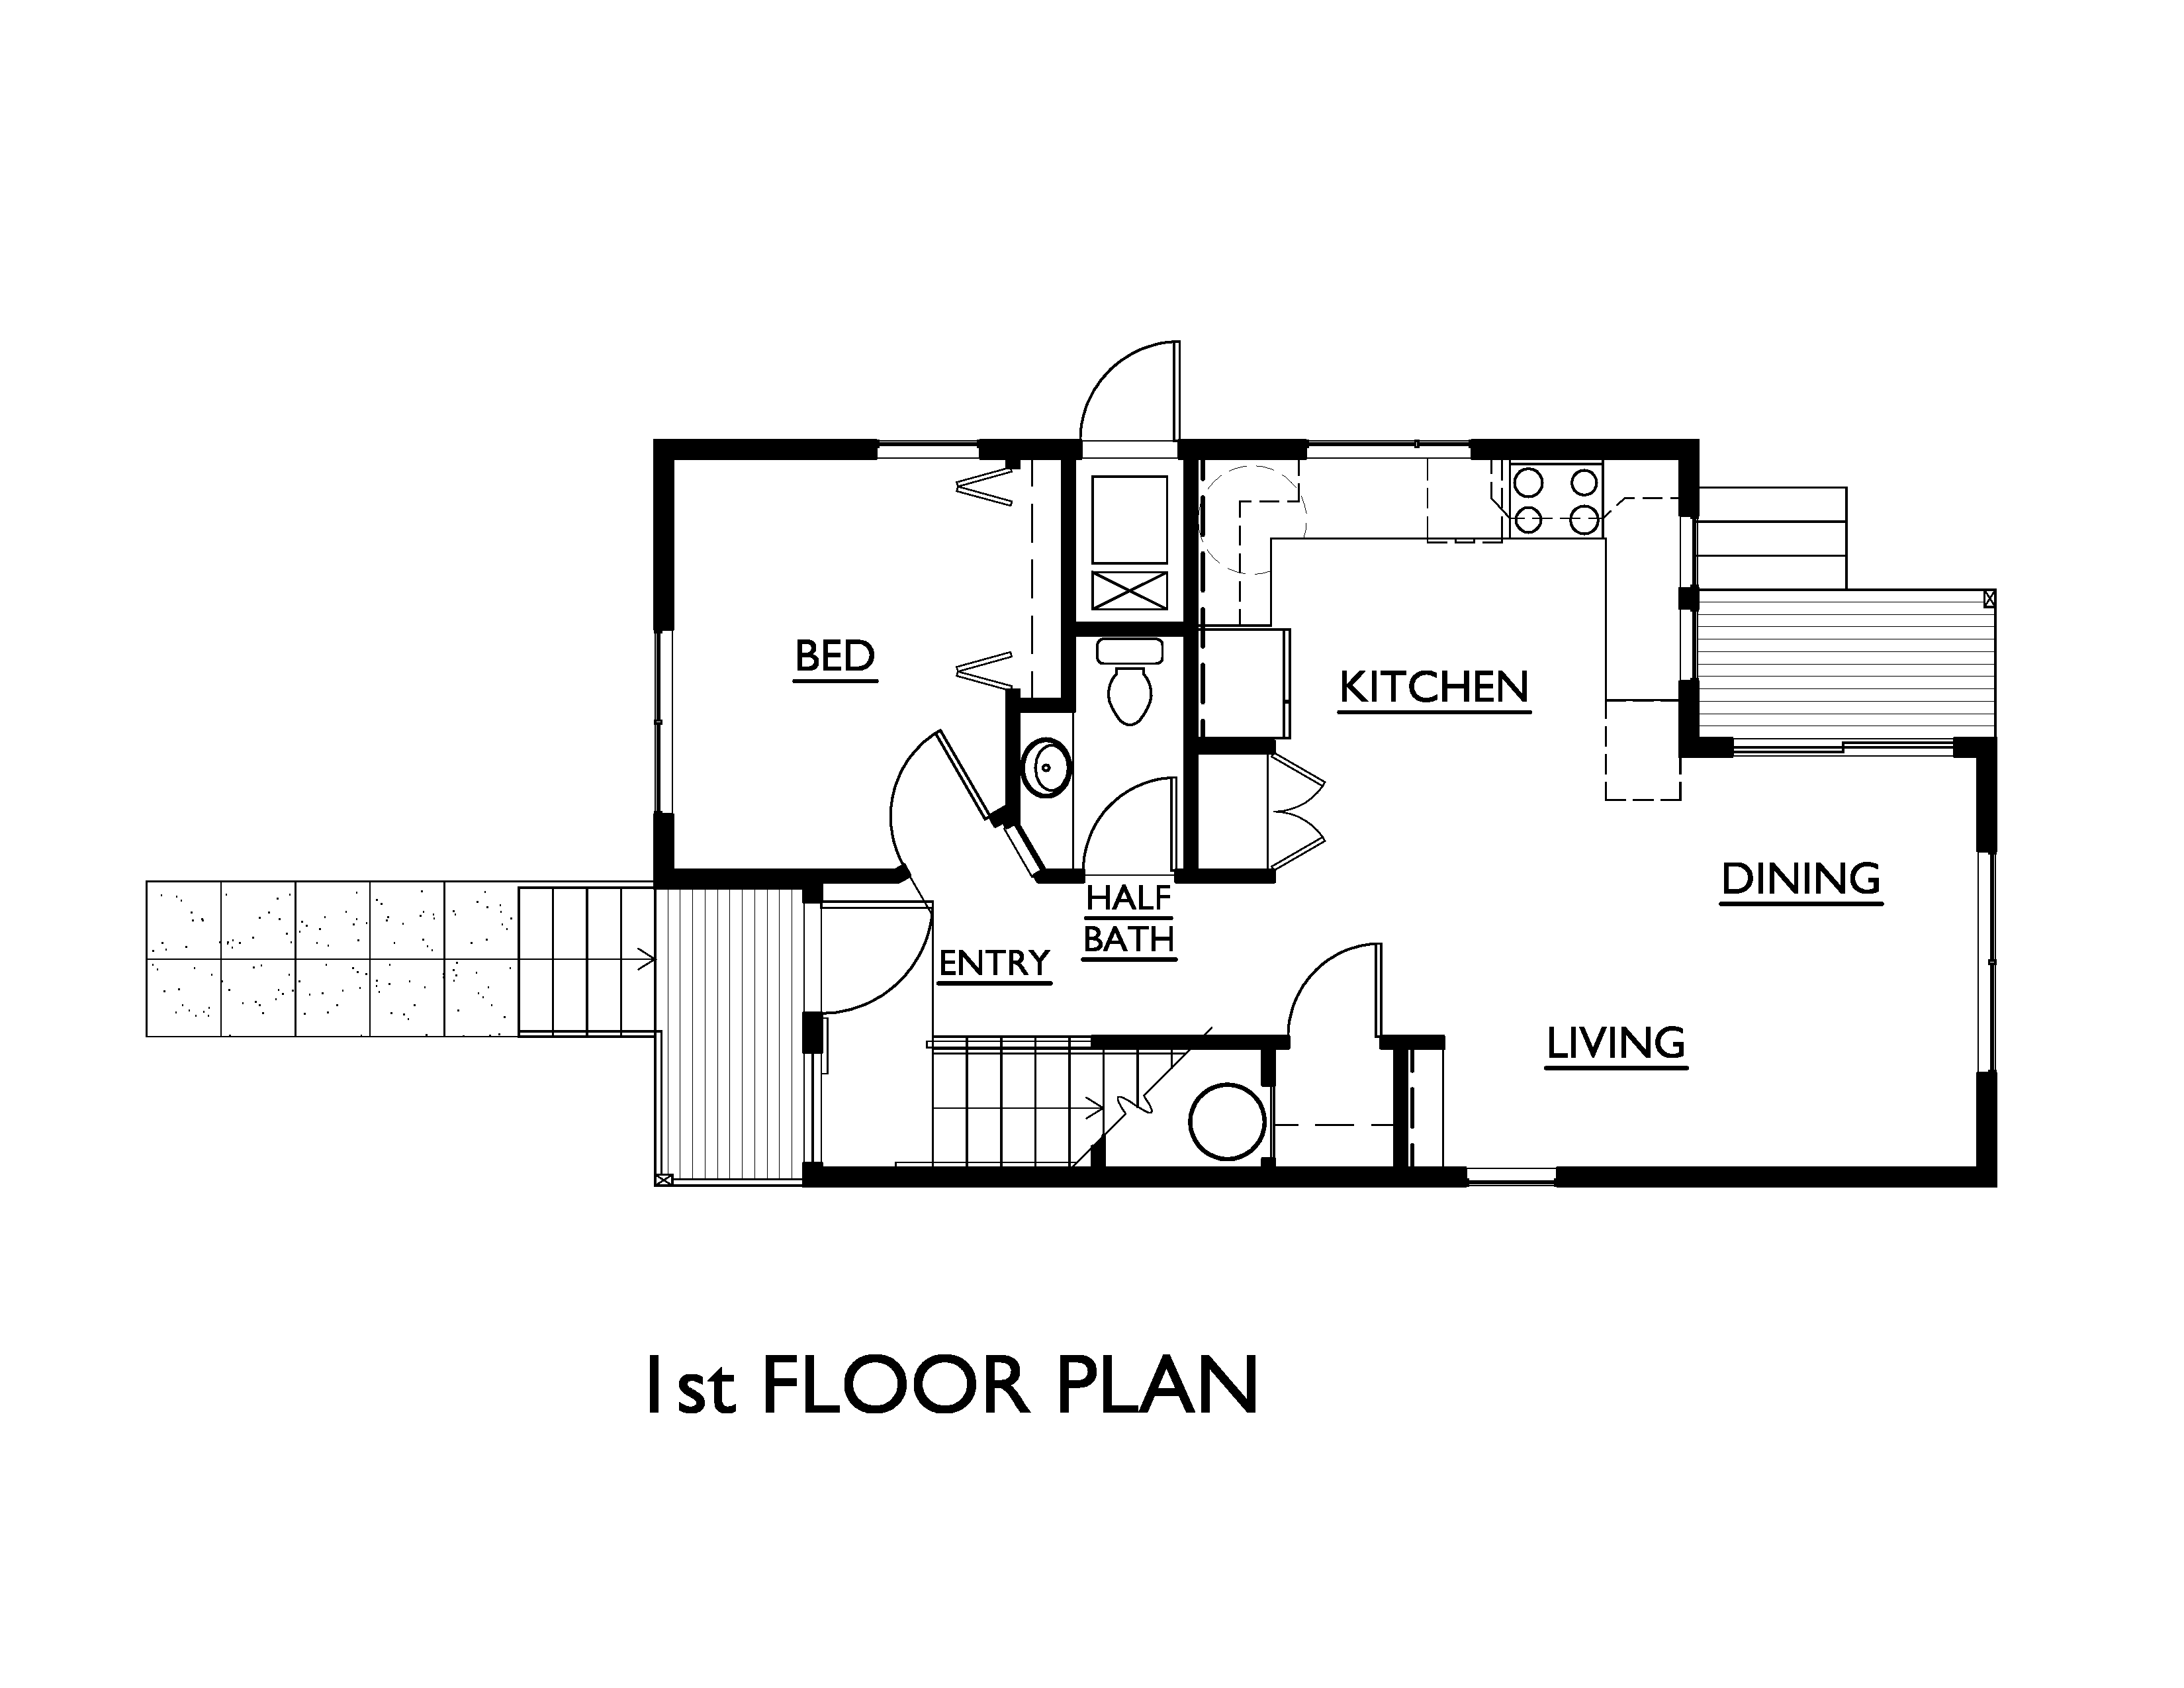 Floor simple house plan measurements house plans 58239 Simple house floor plans